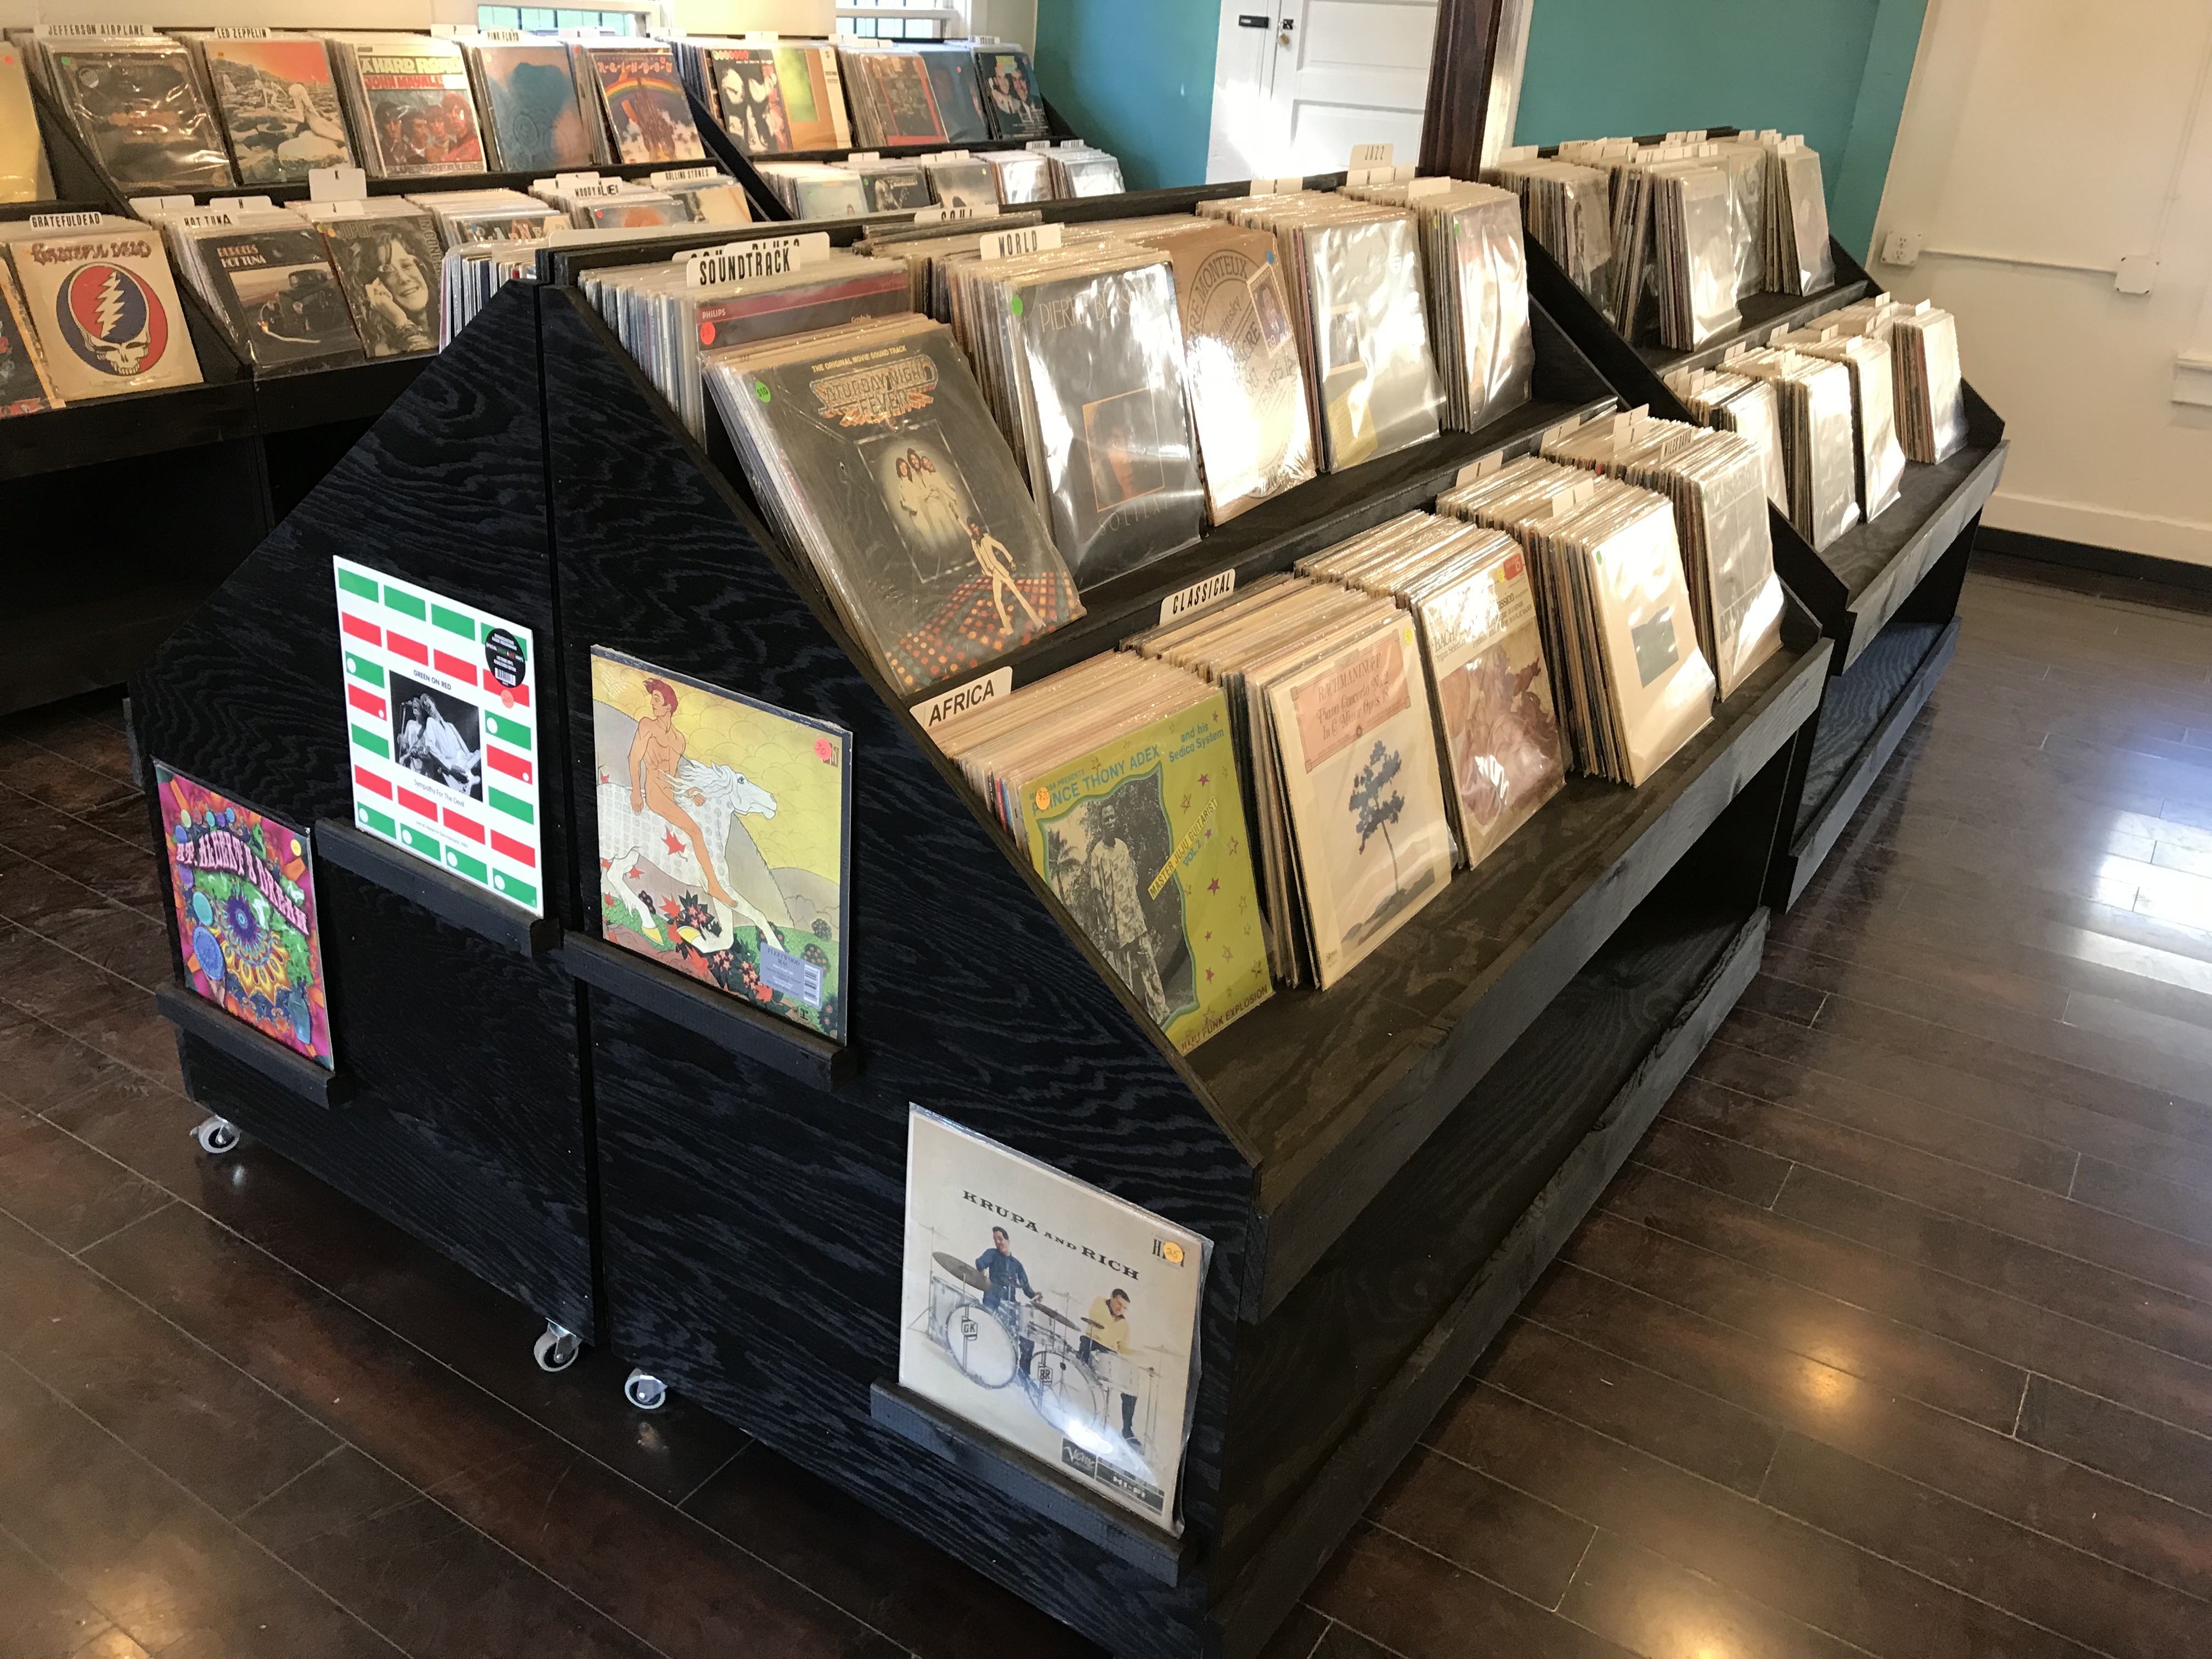 Tucson record stores 7th level music the selection there at the time was mostly classic rock jazz soul and interesting soundtracks note the saturday night fever soundtrack record above solutioingenieria Gallery